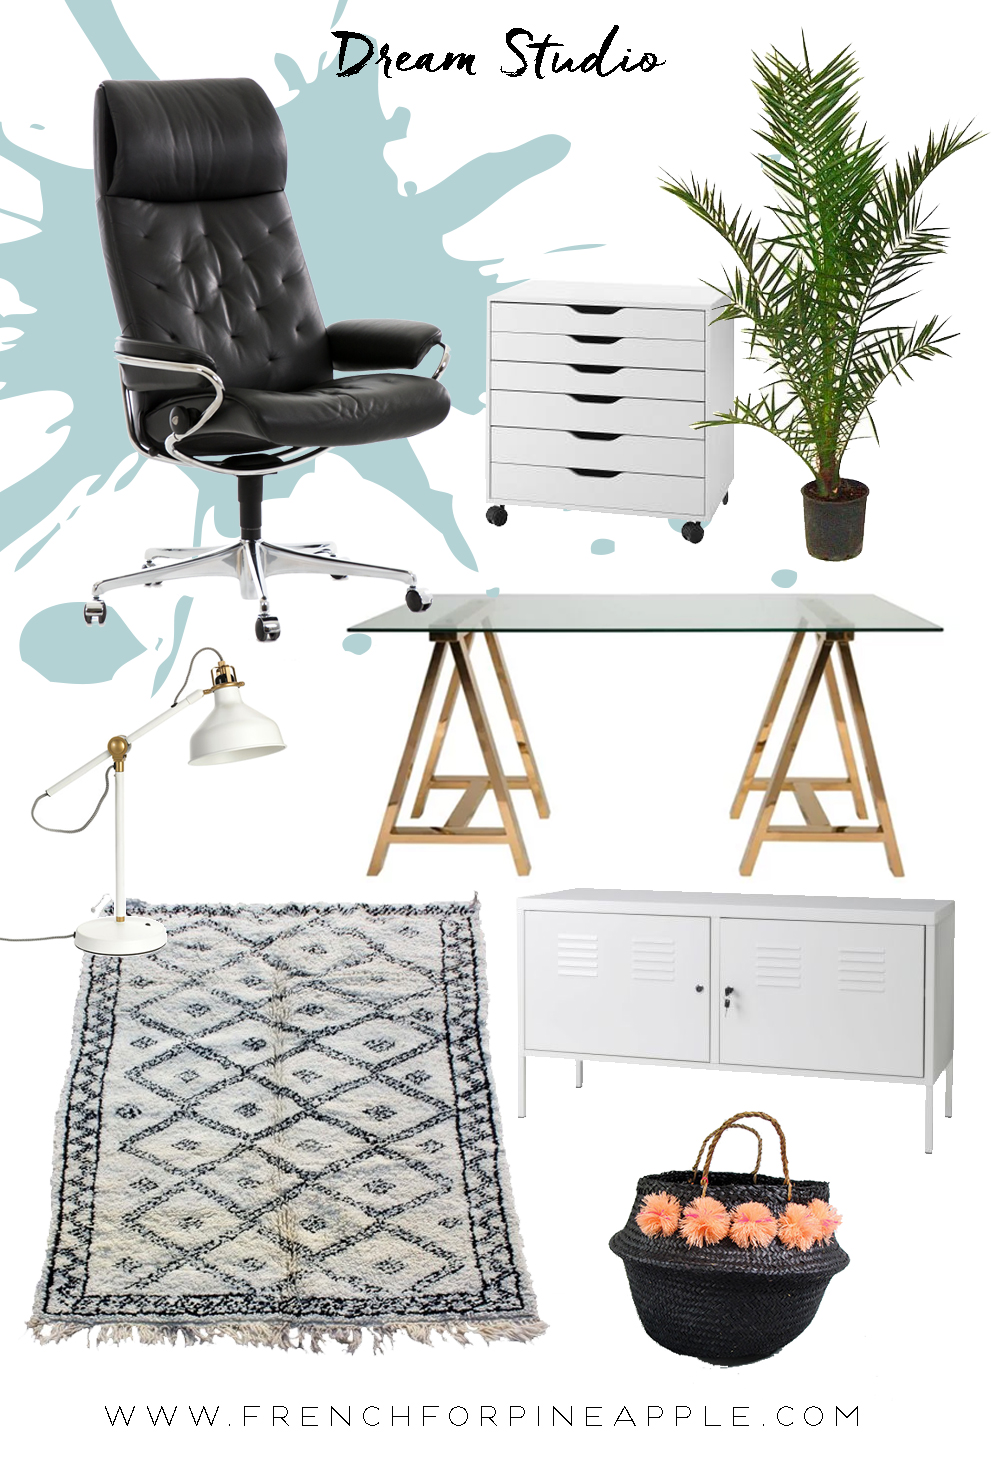 Dream Studio Moodboard - French For Pineapple Blog